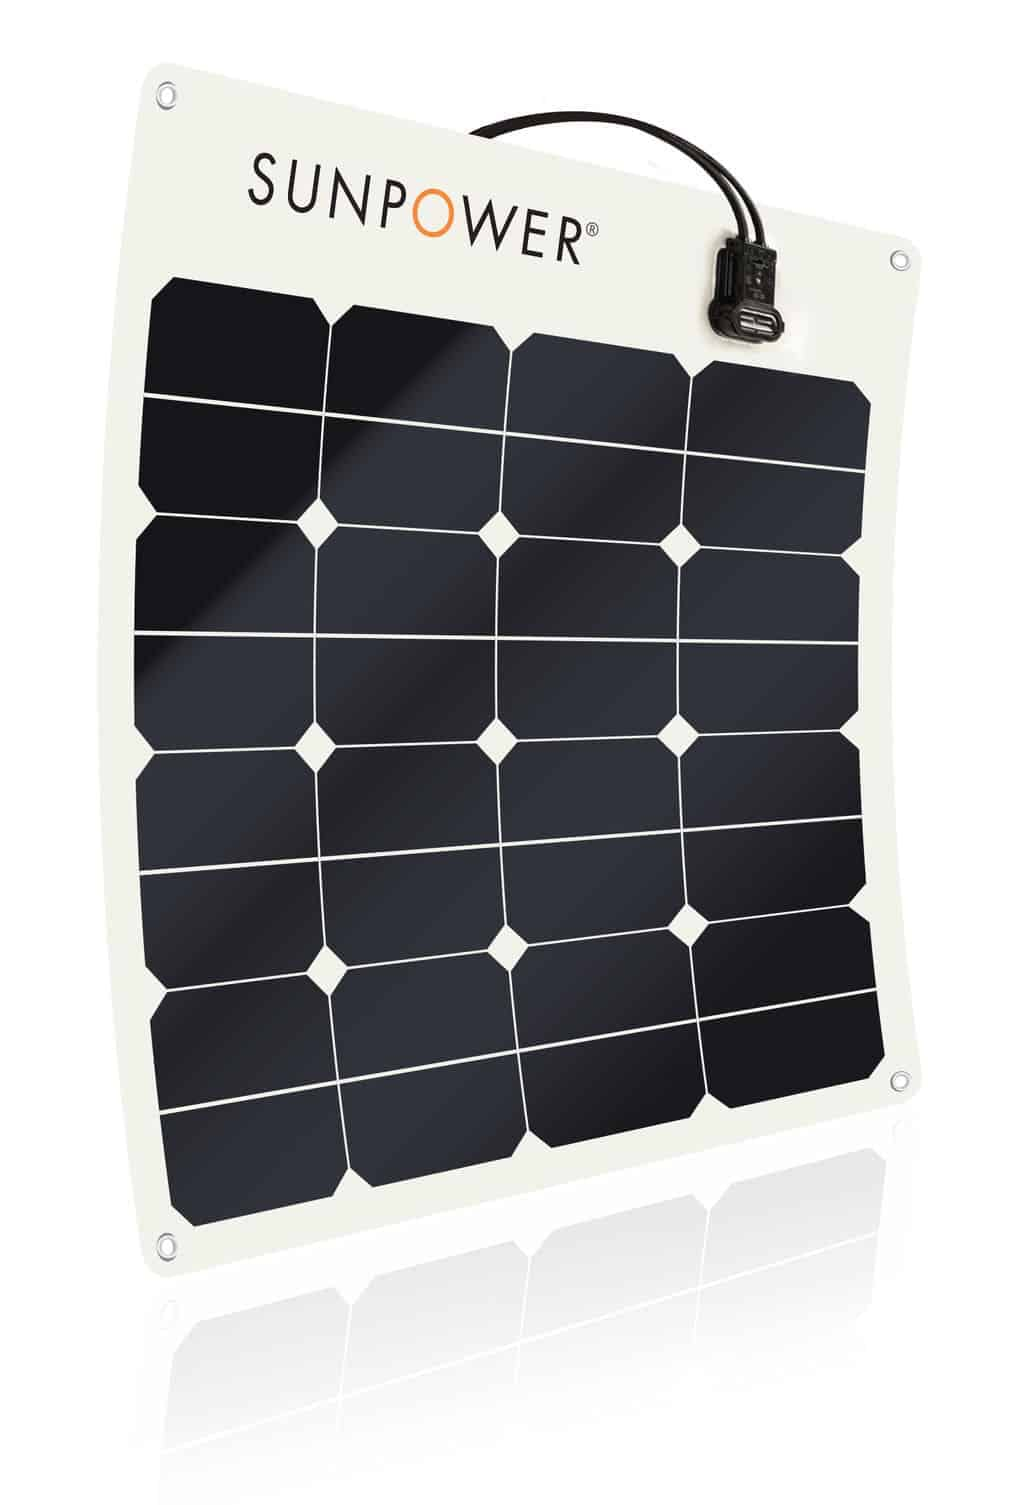 SunPower SPR-E-Flex-50 Flexible 50 watt Solar Panel